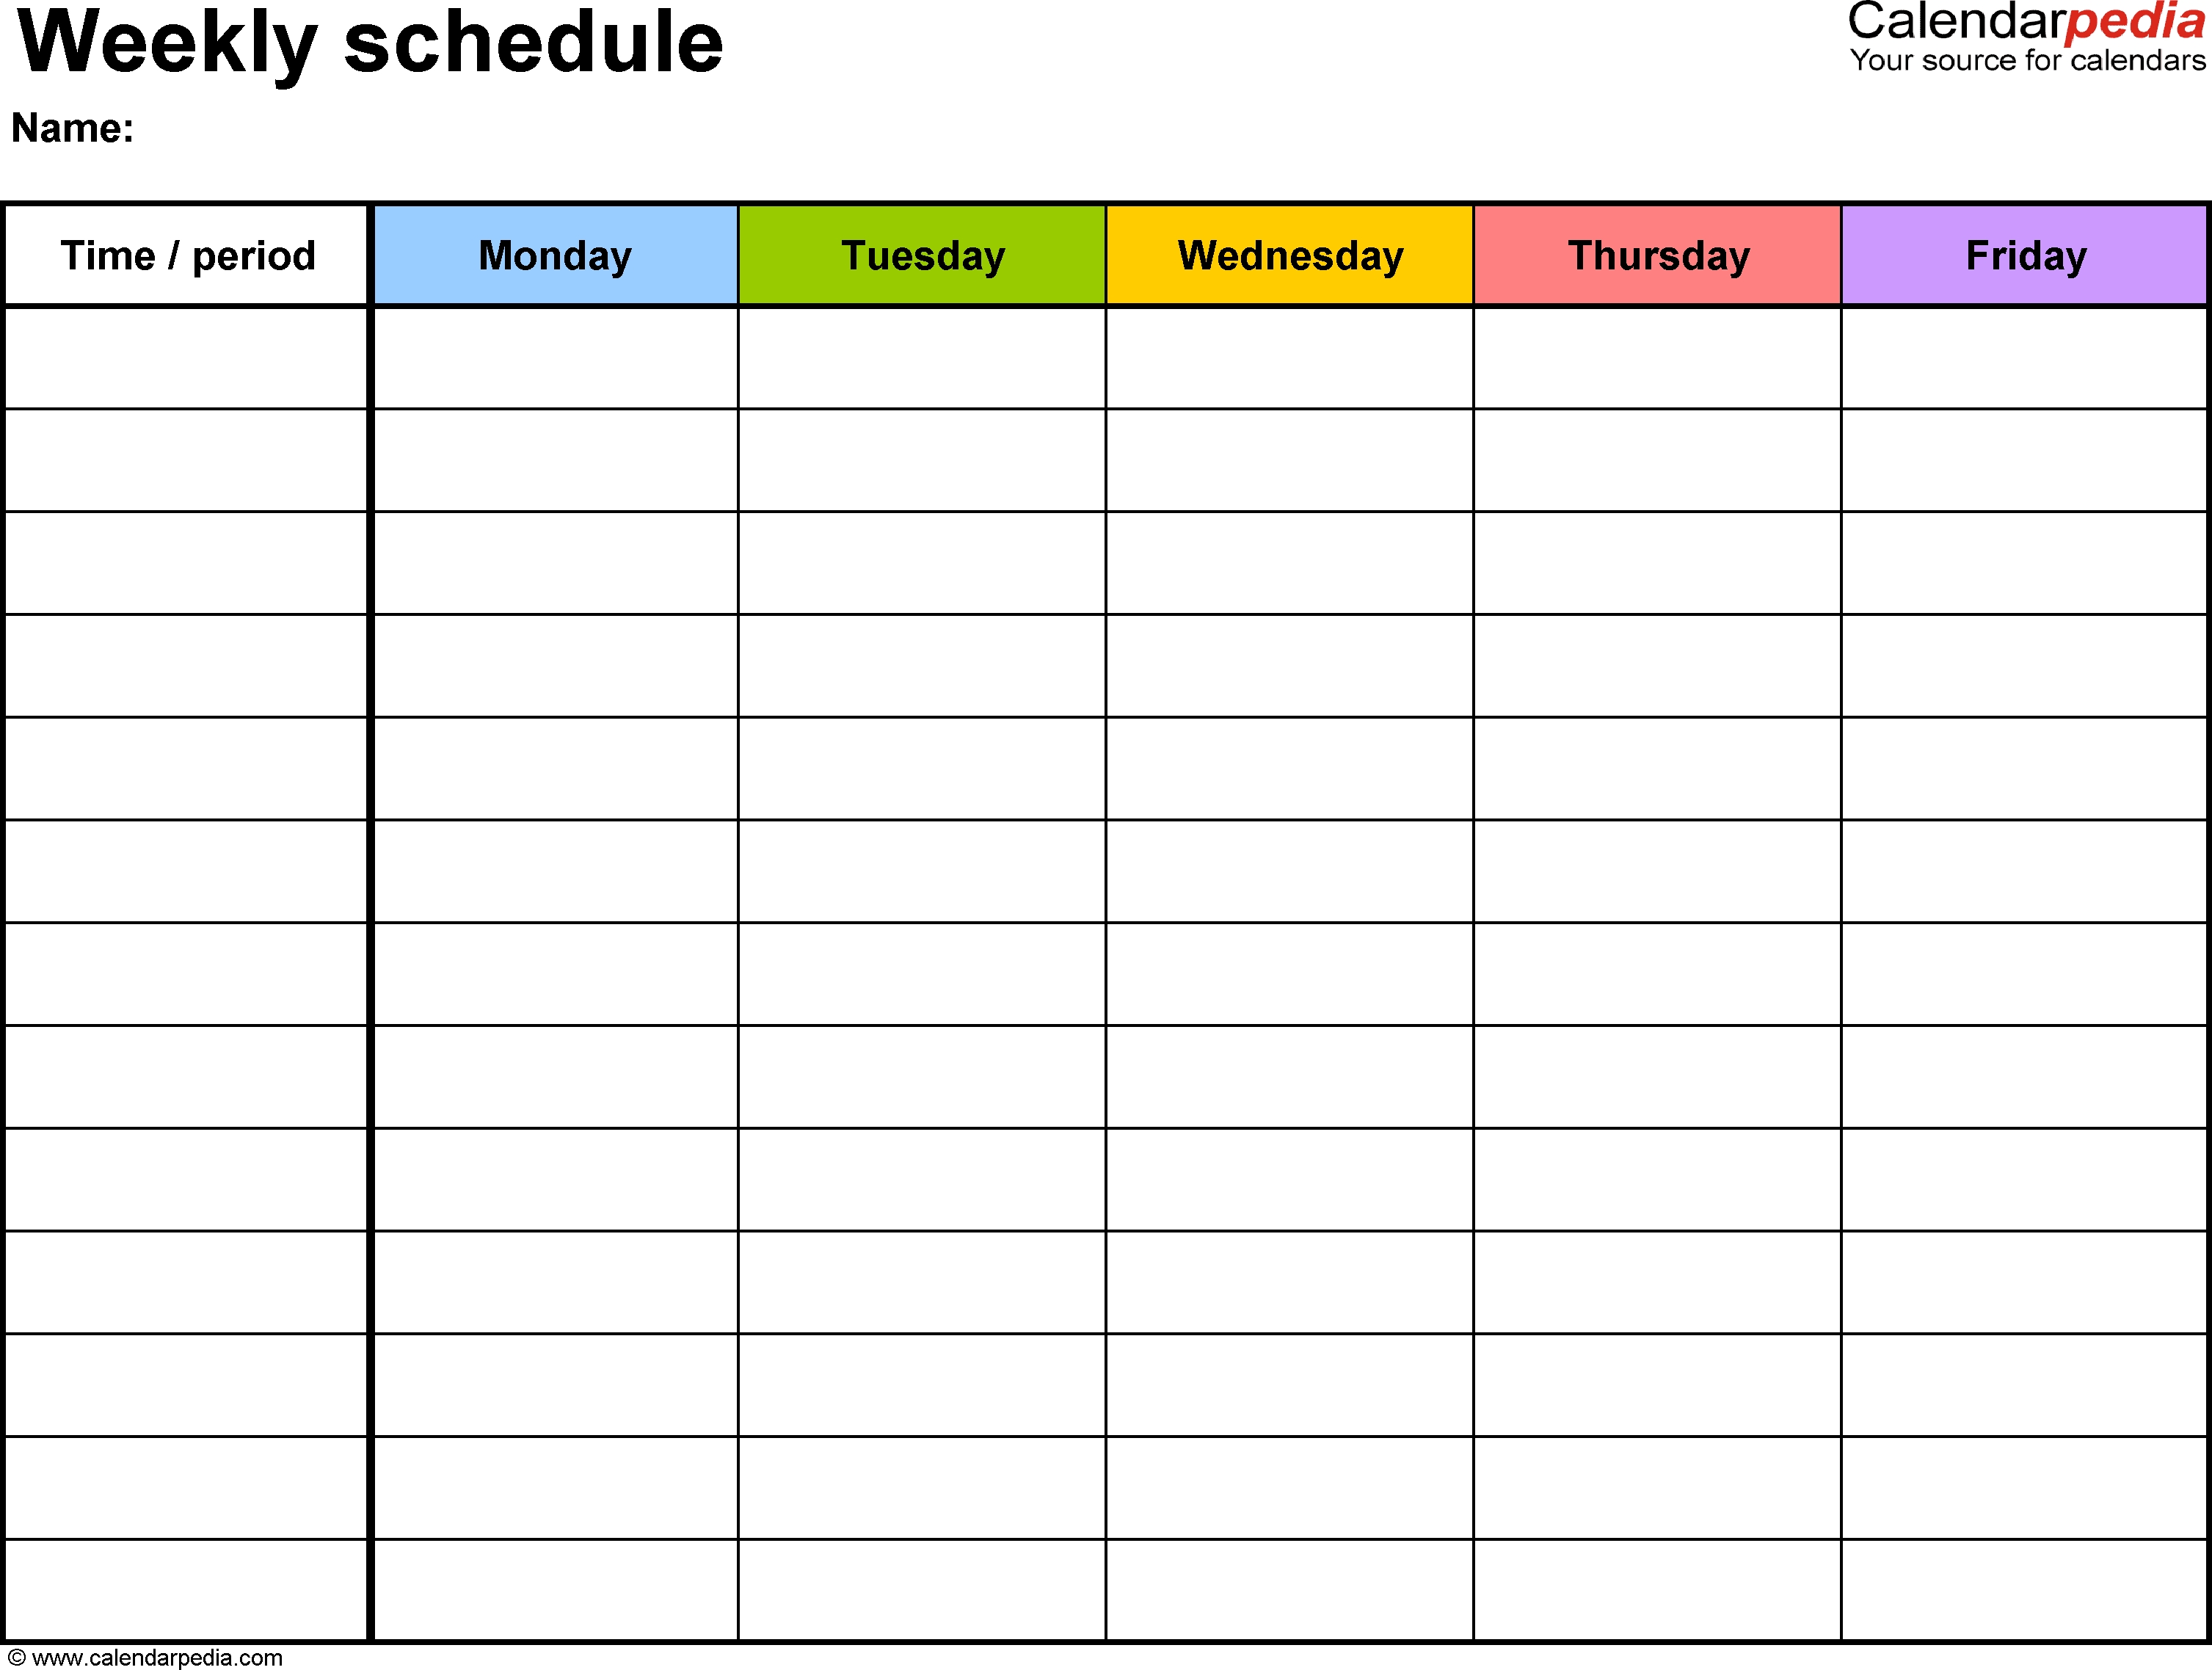 Free Weekly Schedule Templates For Excel - 18 Templates pertaining to Blank Excel Spreadsheet With Calendar